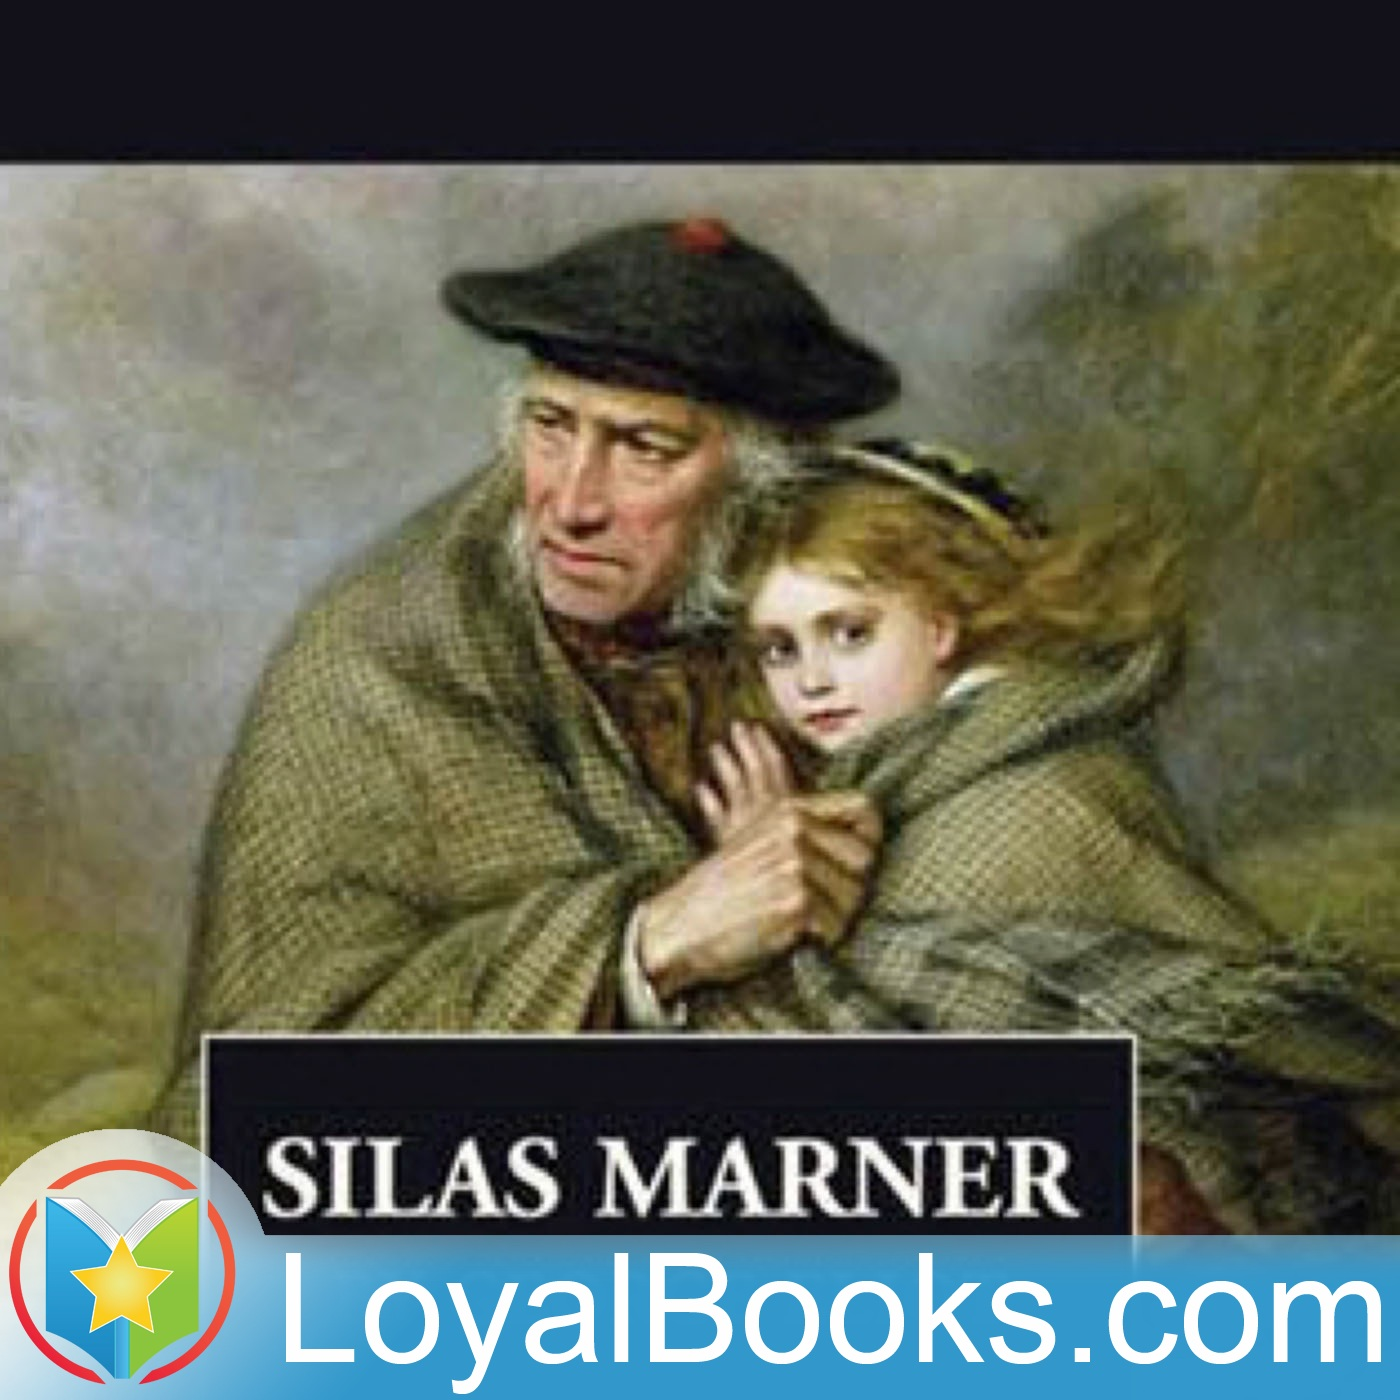 <![CDATA[Silas Marner by George Eliot]]>